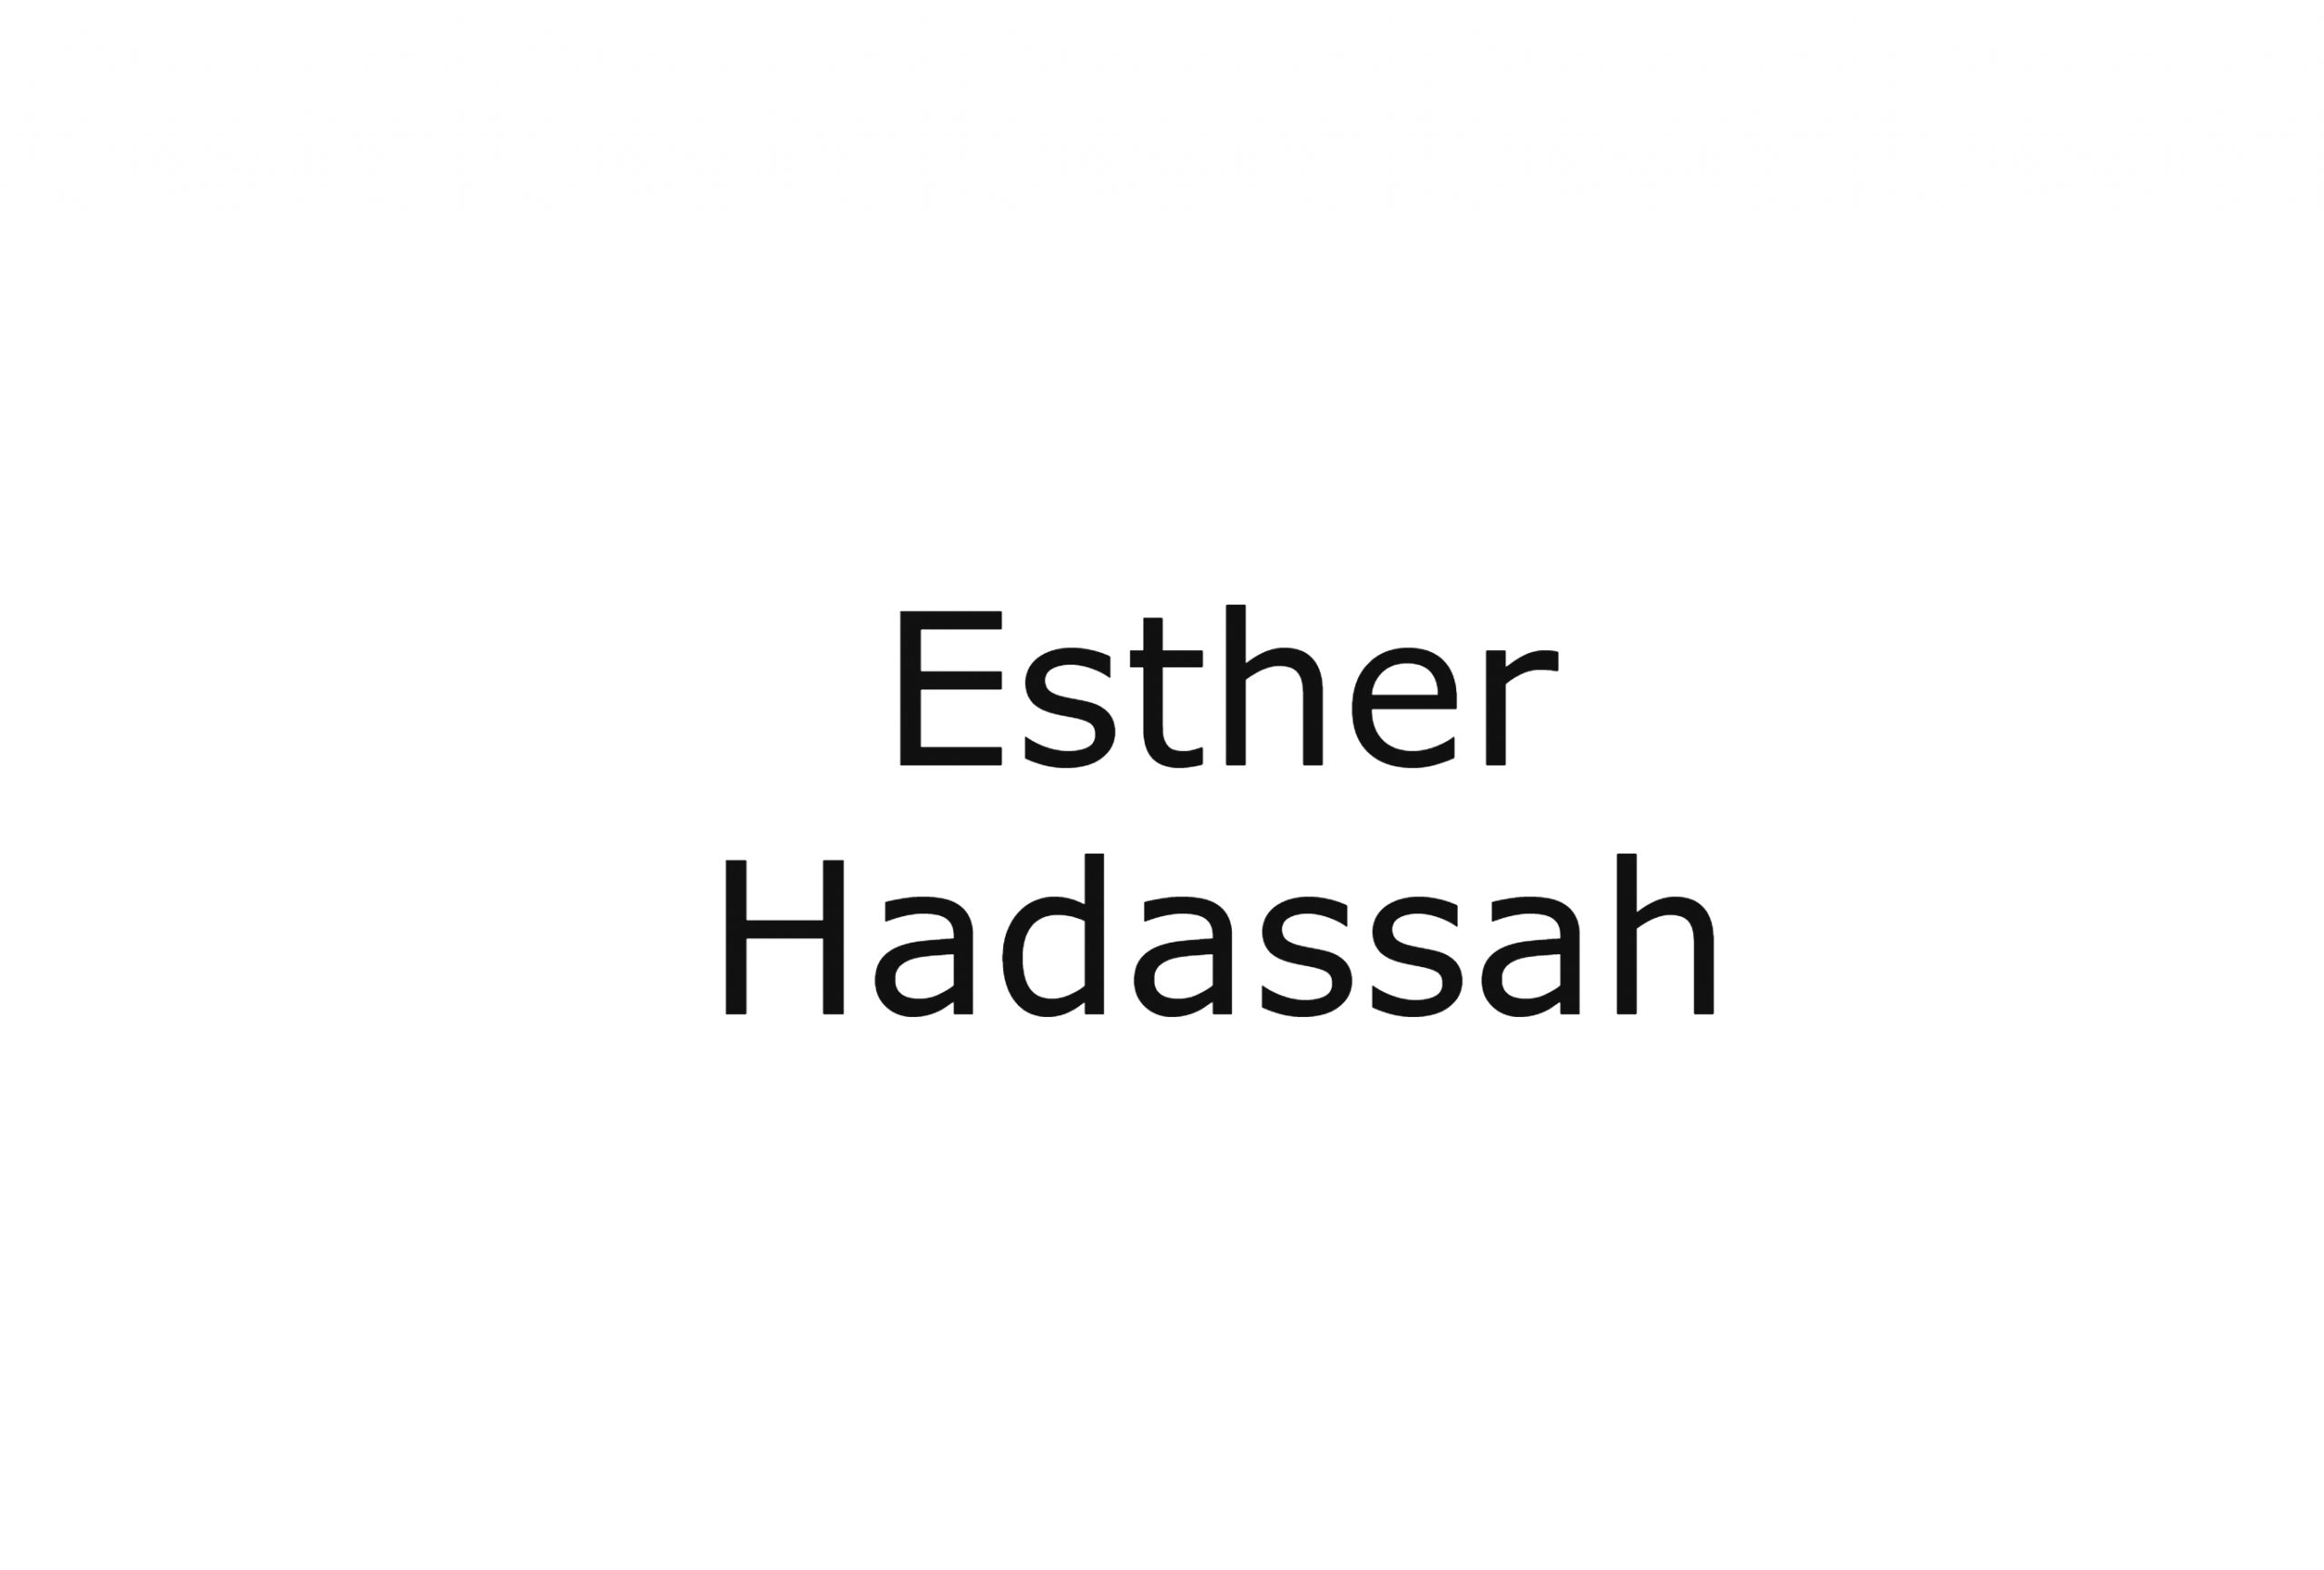 Author Esther Hadassah